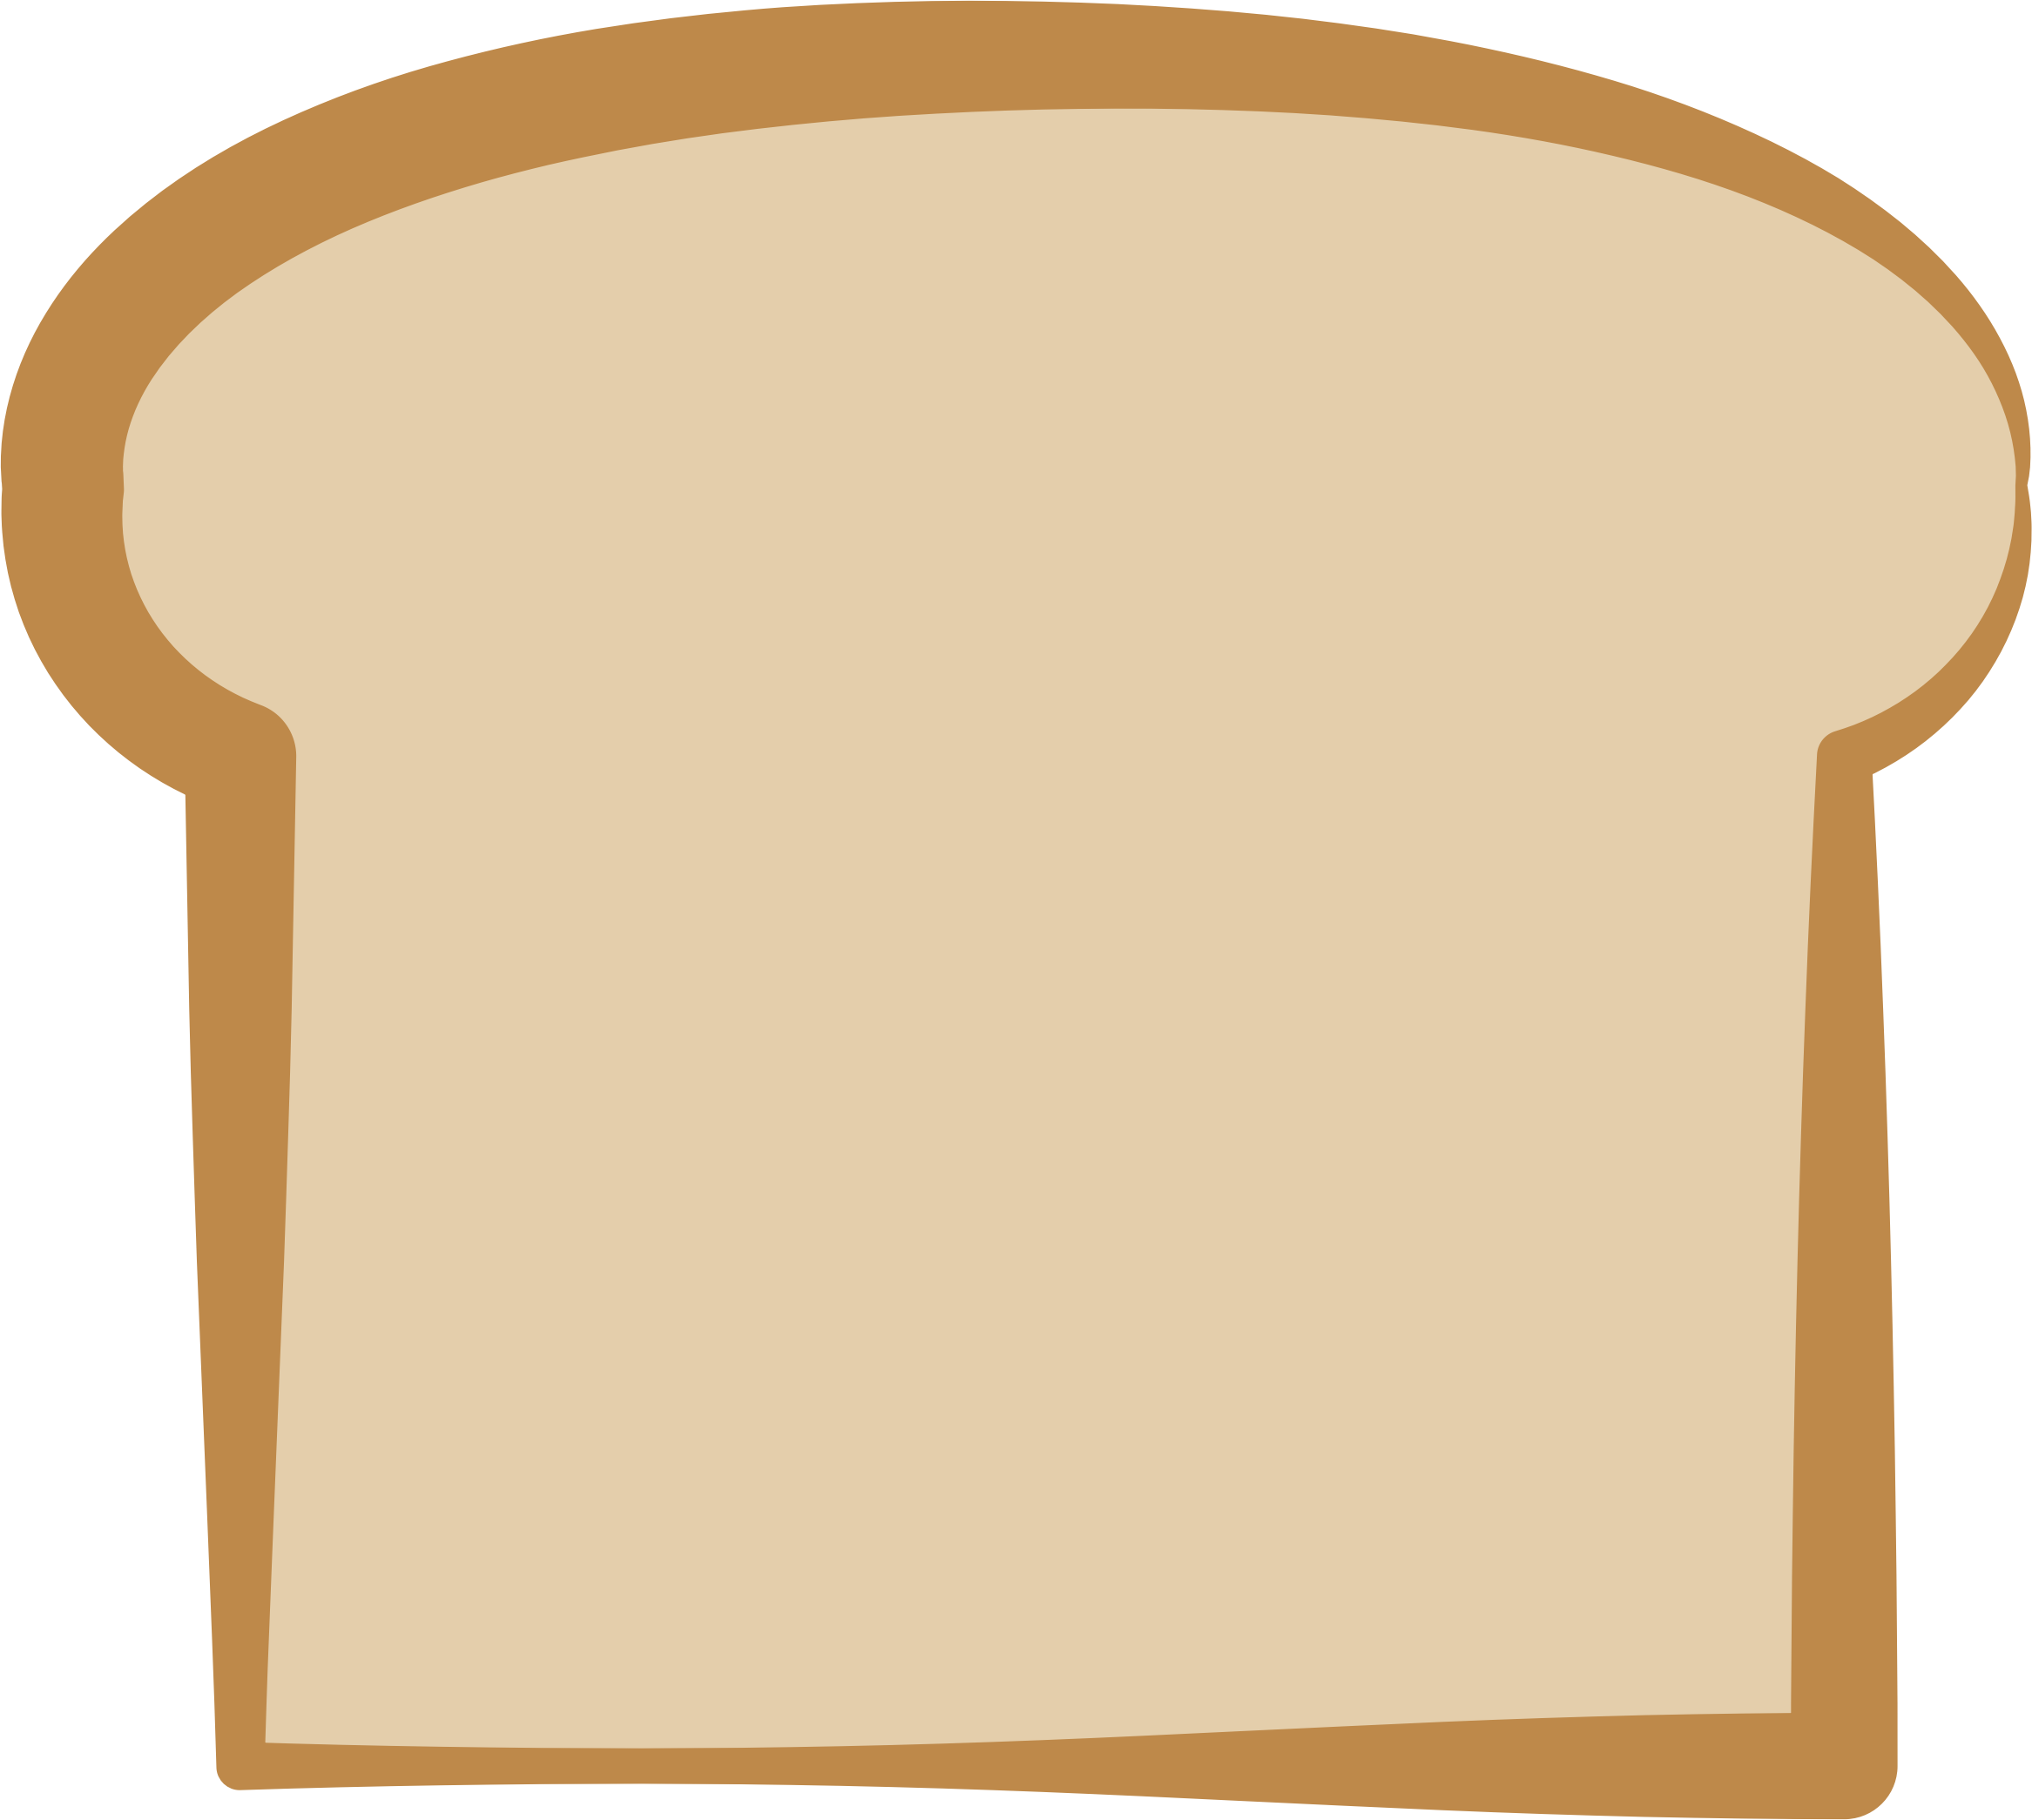 Jelly clipart slice bread. Big image png